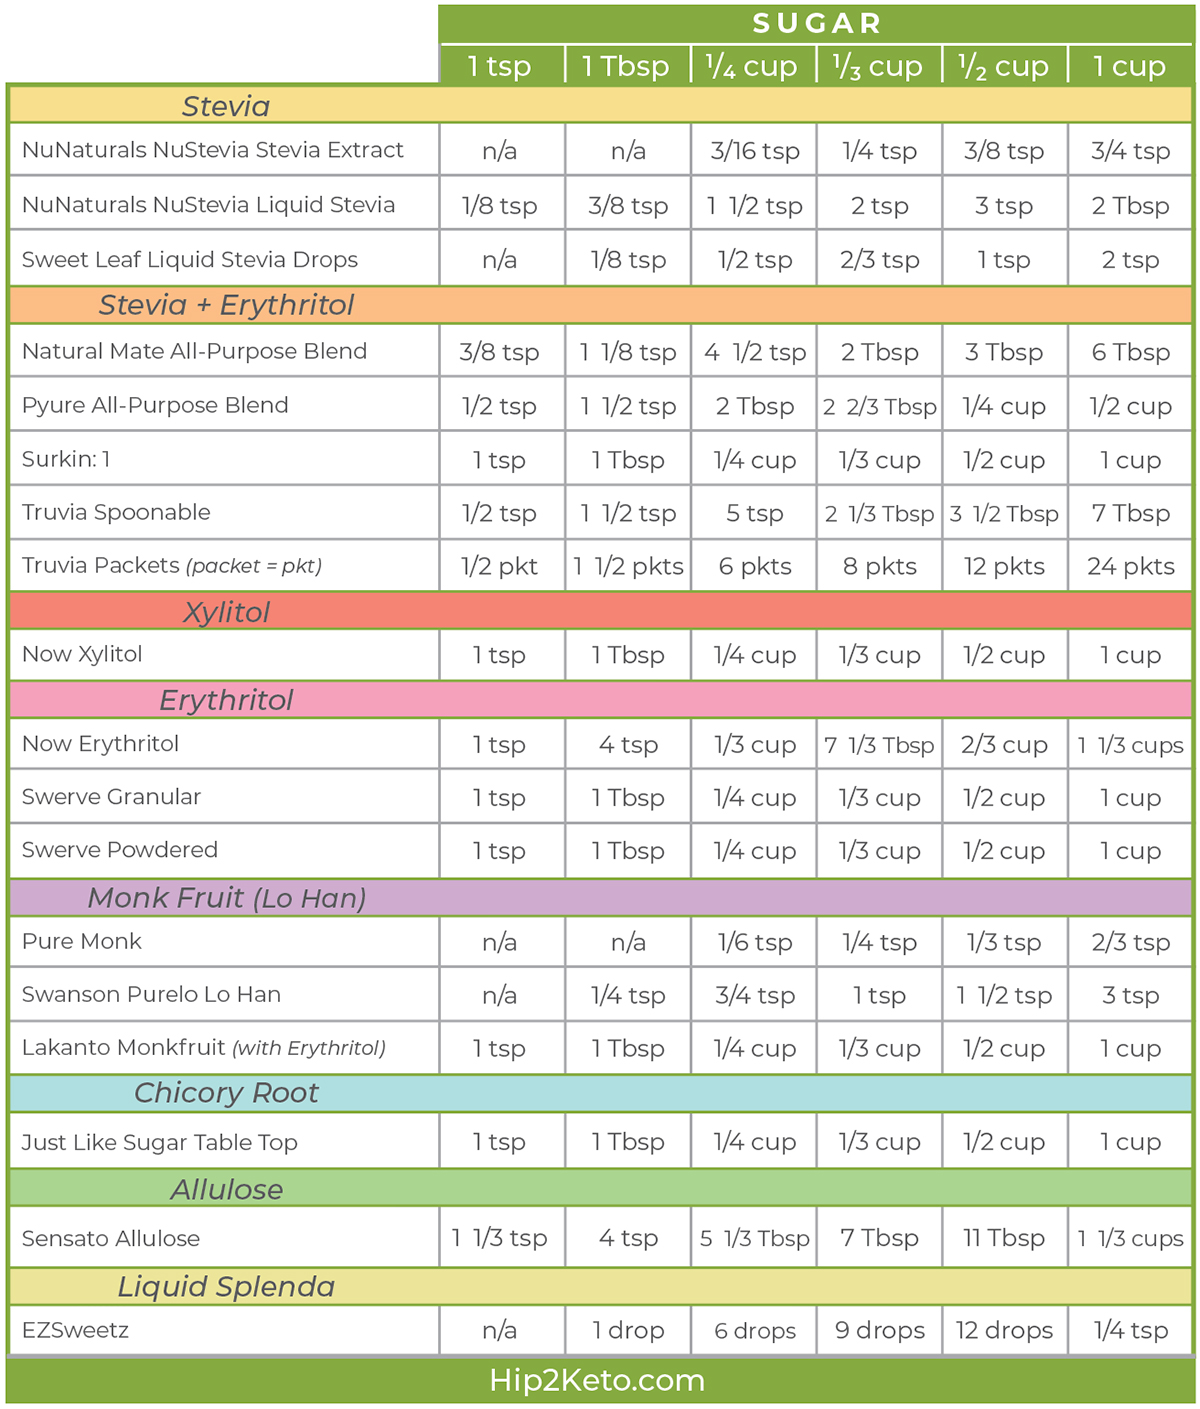 low-carb and keto sweetener conversion chart   Hip2Keto